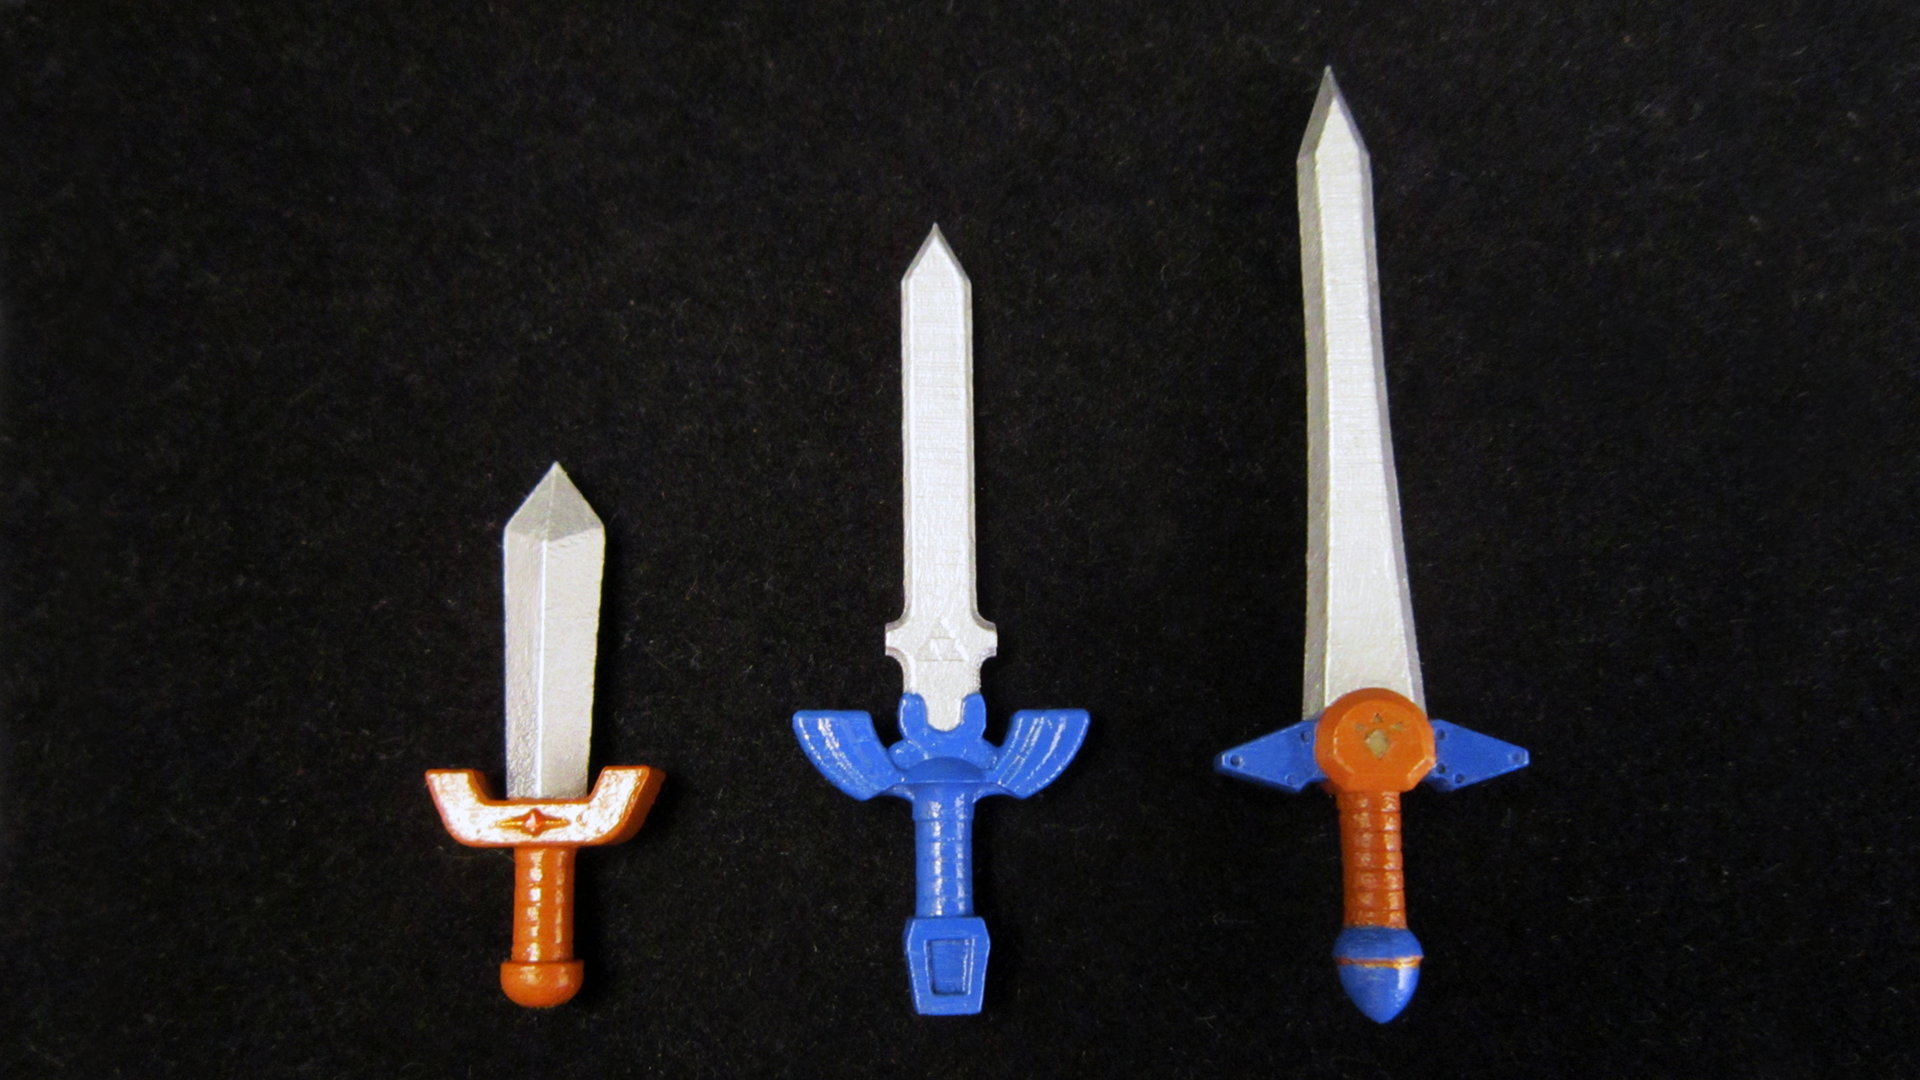 lego 3d printed ocarina of time swords by mingles on